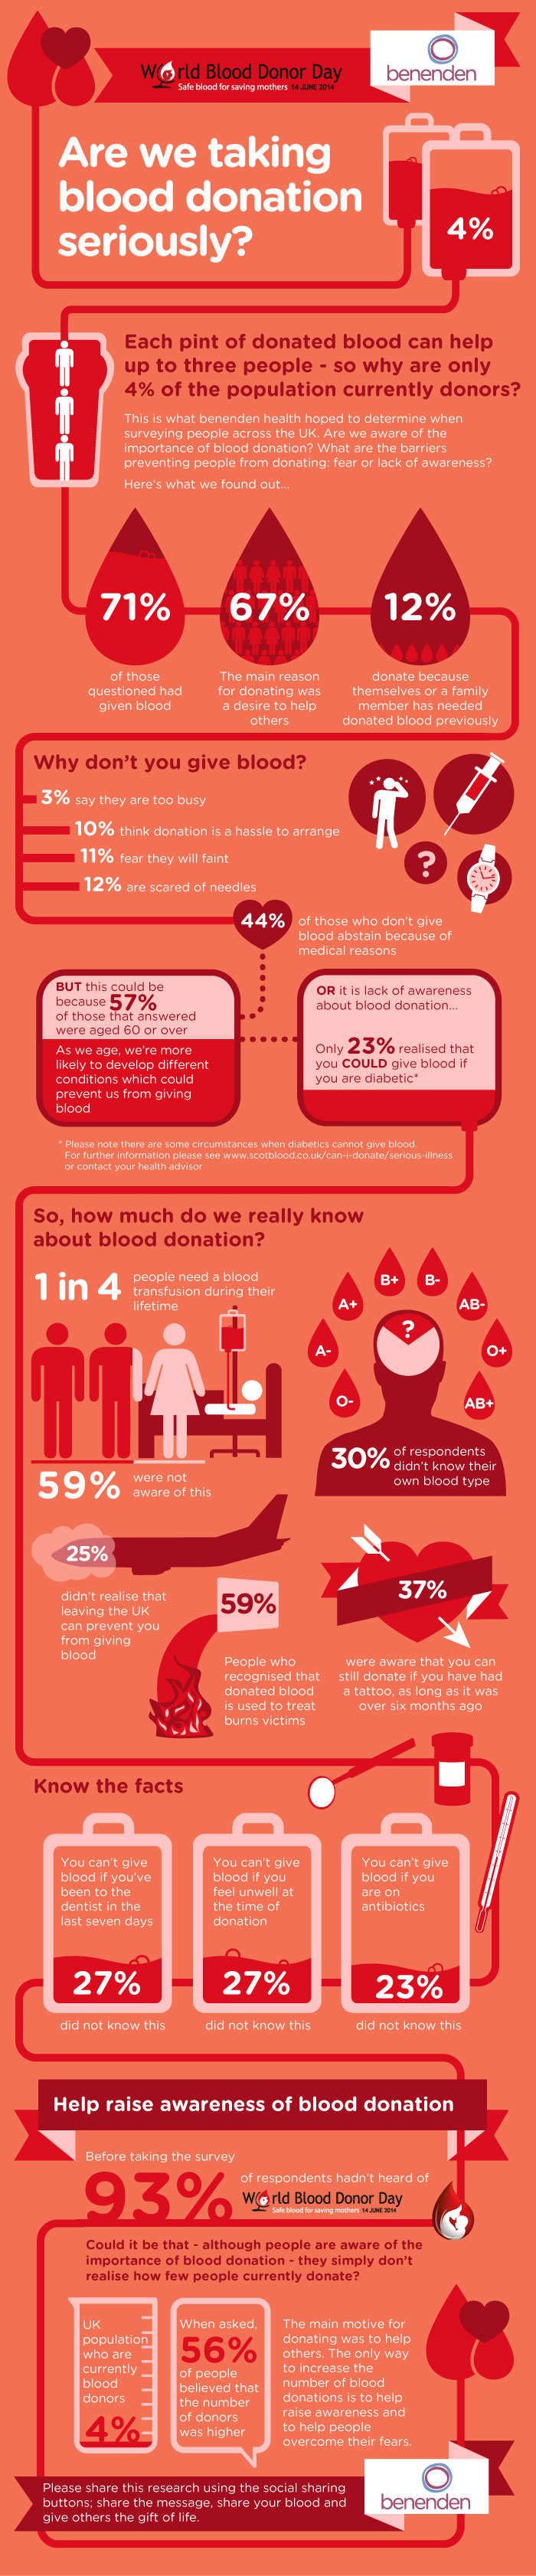 Simple Act of Saving a Life - World Blood Donor Day The Oliver\\\'s Madhouse